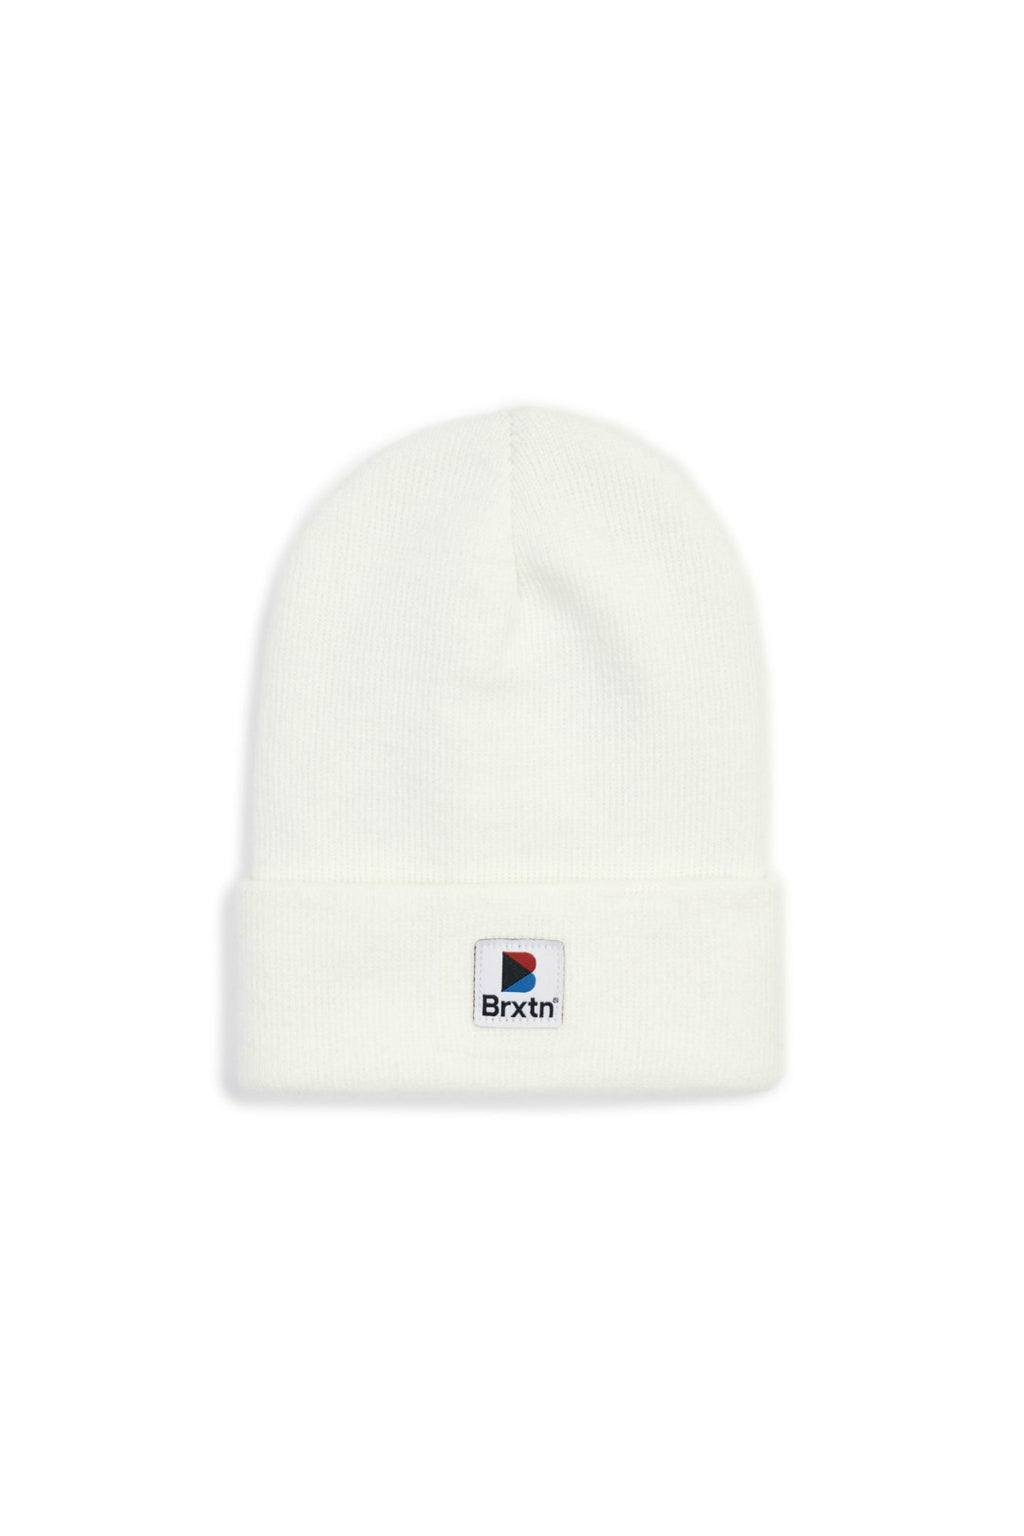 Brixton Stowell ll Beanie in Off White